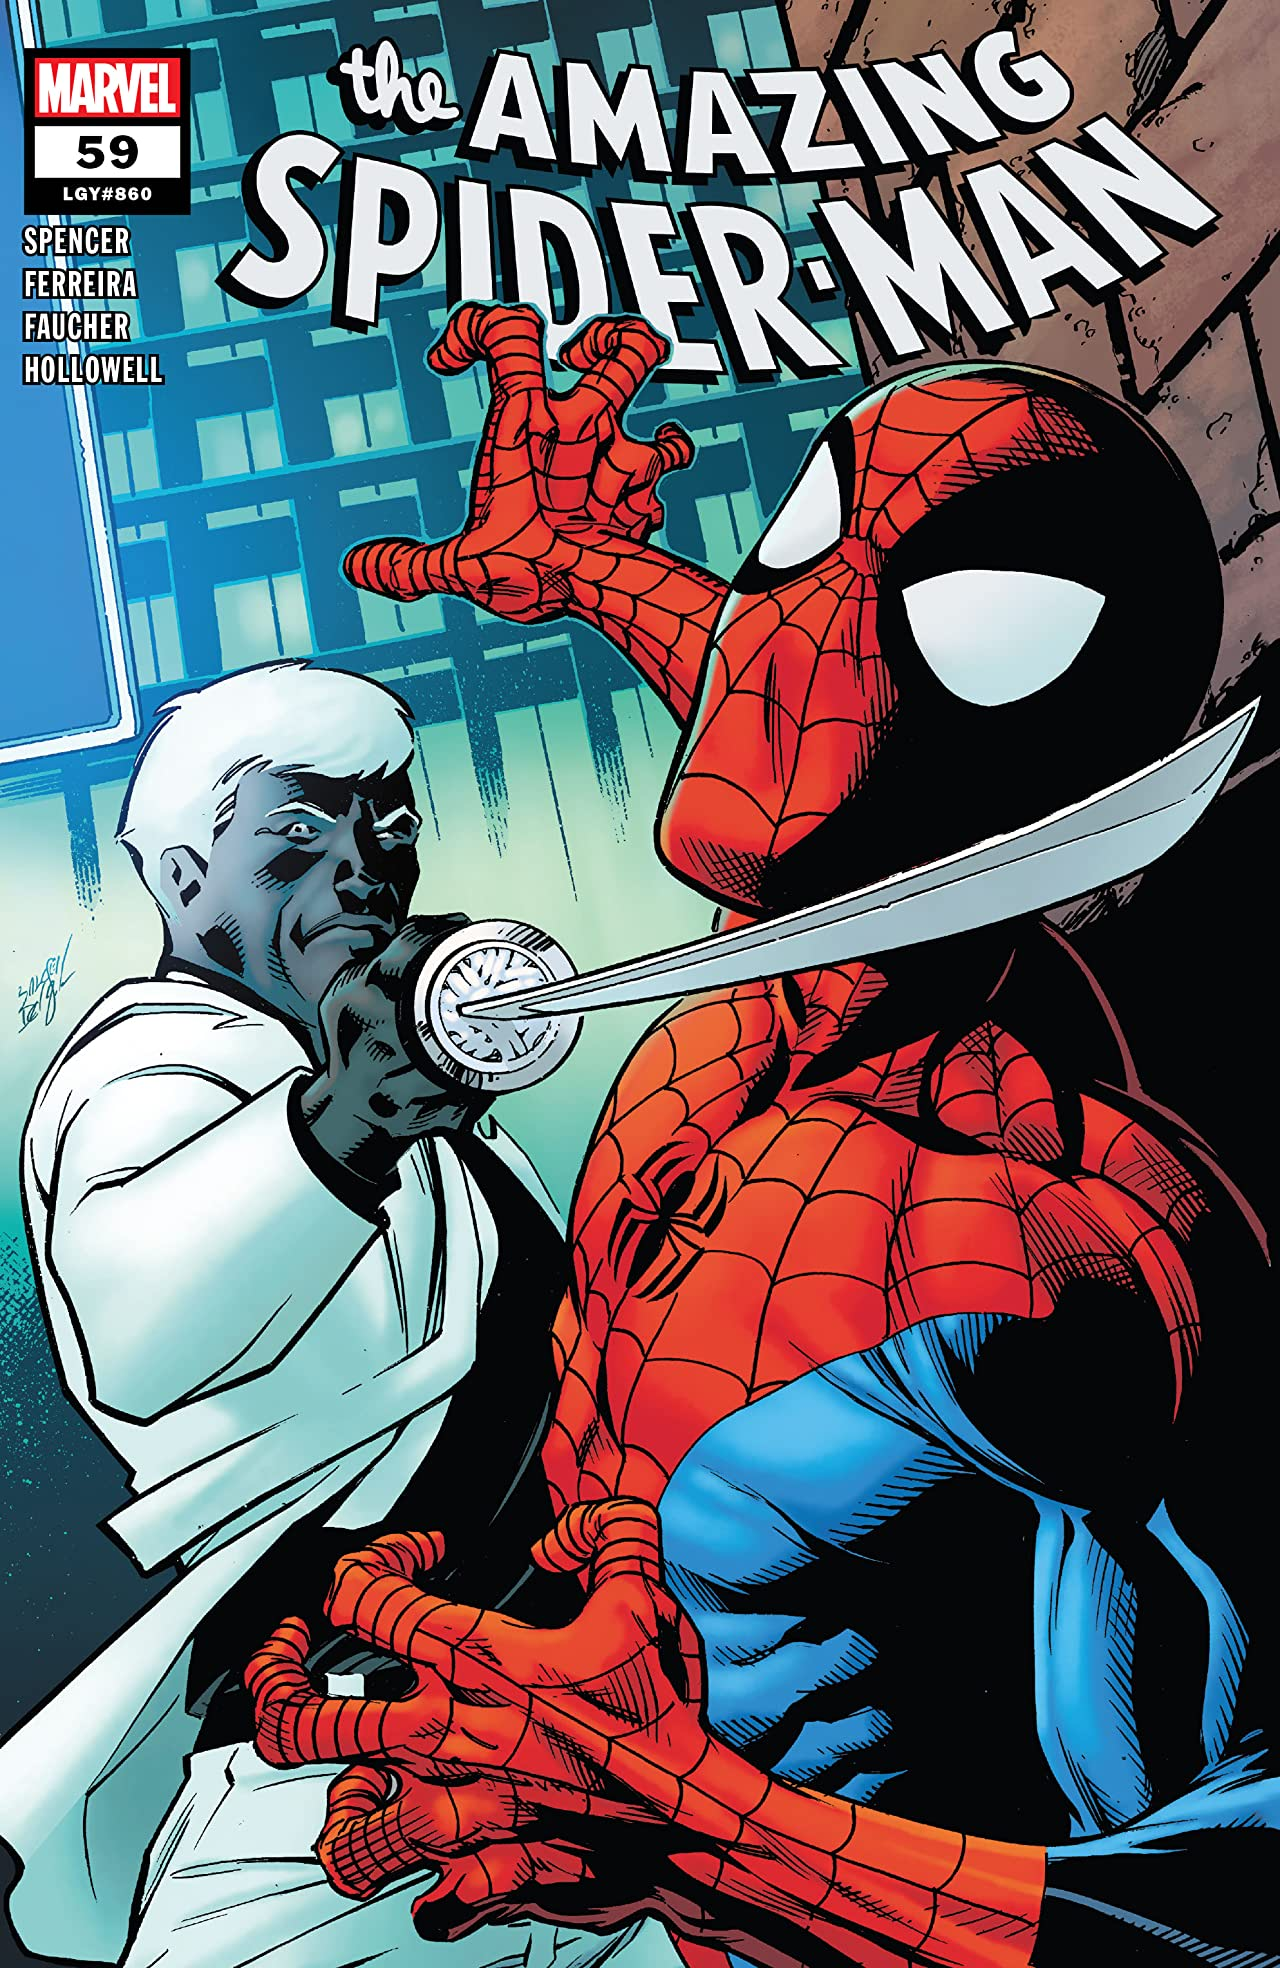 REVIEW: AMAZING SPIDER-MAN #59